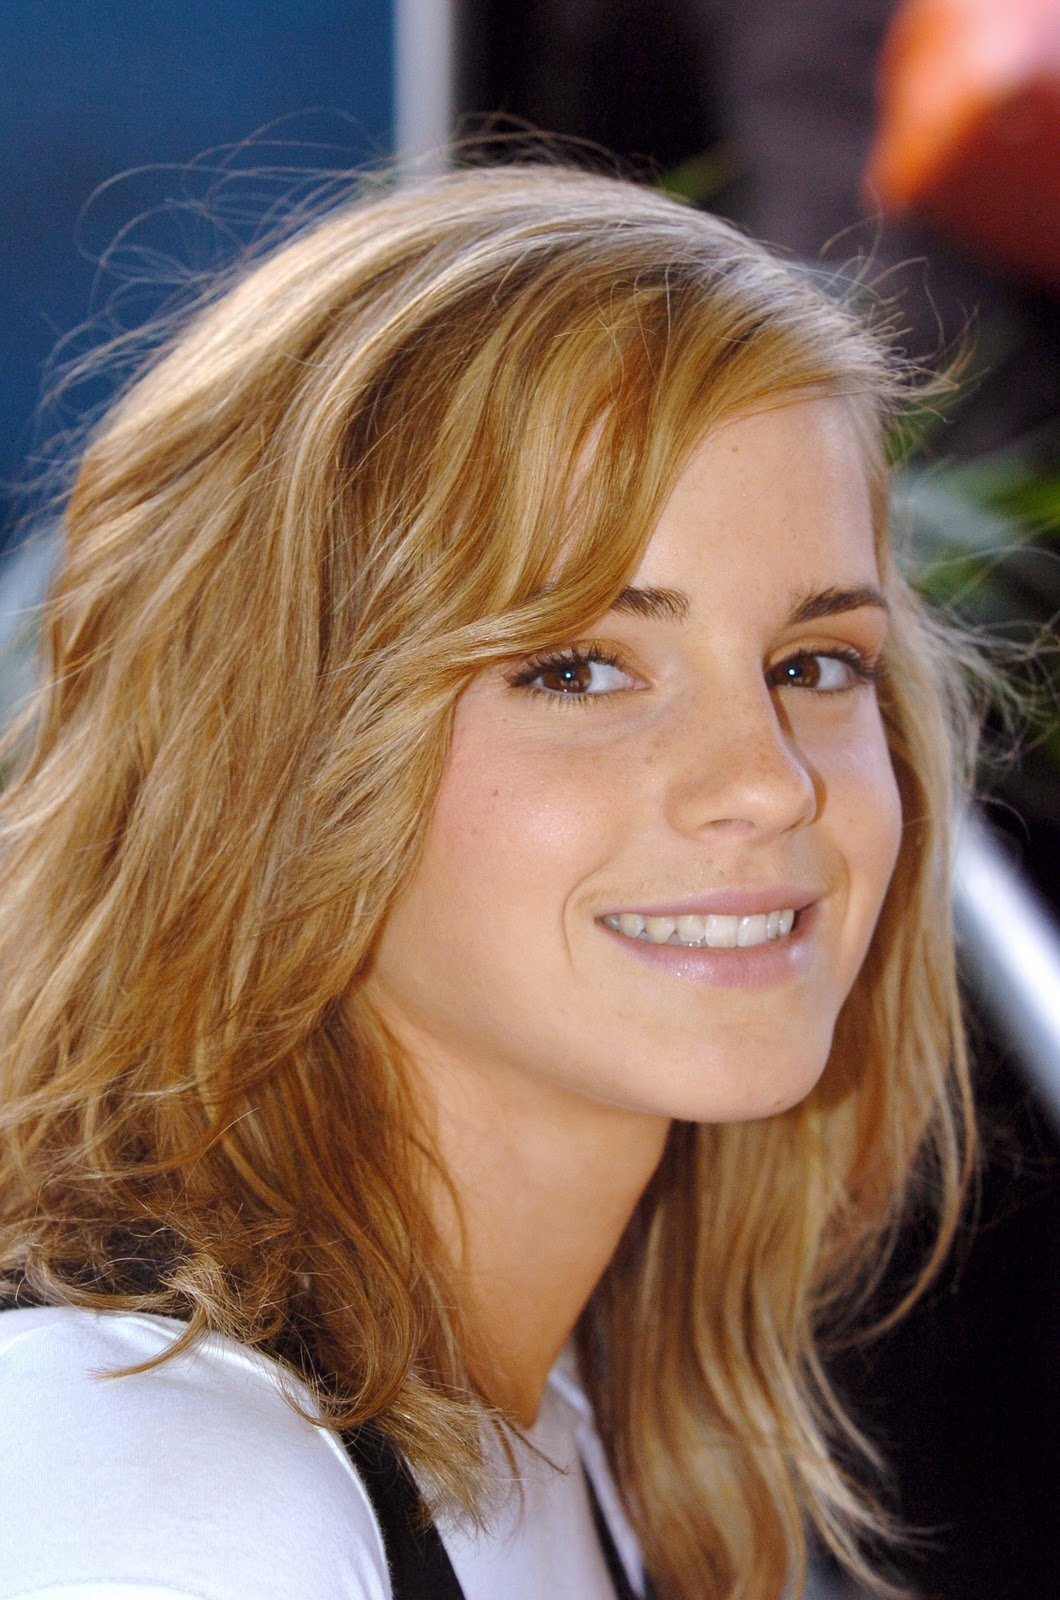 http://1.bp.blogspot.com/-u8-P_O_W1Ls/Tt_IT-ecjPI/AAAAAAAADIk/kbW3TV6VBn4/s1600/Girl+Hairstyle%252C+Photo+Gallery%252C+Emma+Watson+Hairstyles%252C+Celebrity+Emma+Watson+Hairstyles%252C+Emma+Watson+Hairstyles+Photo%252C+Latest+Emma+Watson+Hairstyles%252C+Emma+Watson+Hairstyles+Cutting+%252855%2529.jpg